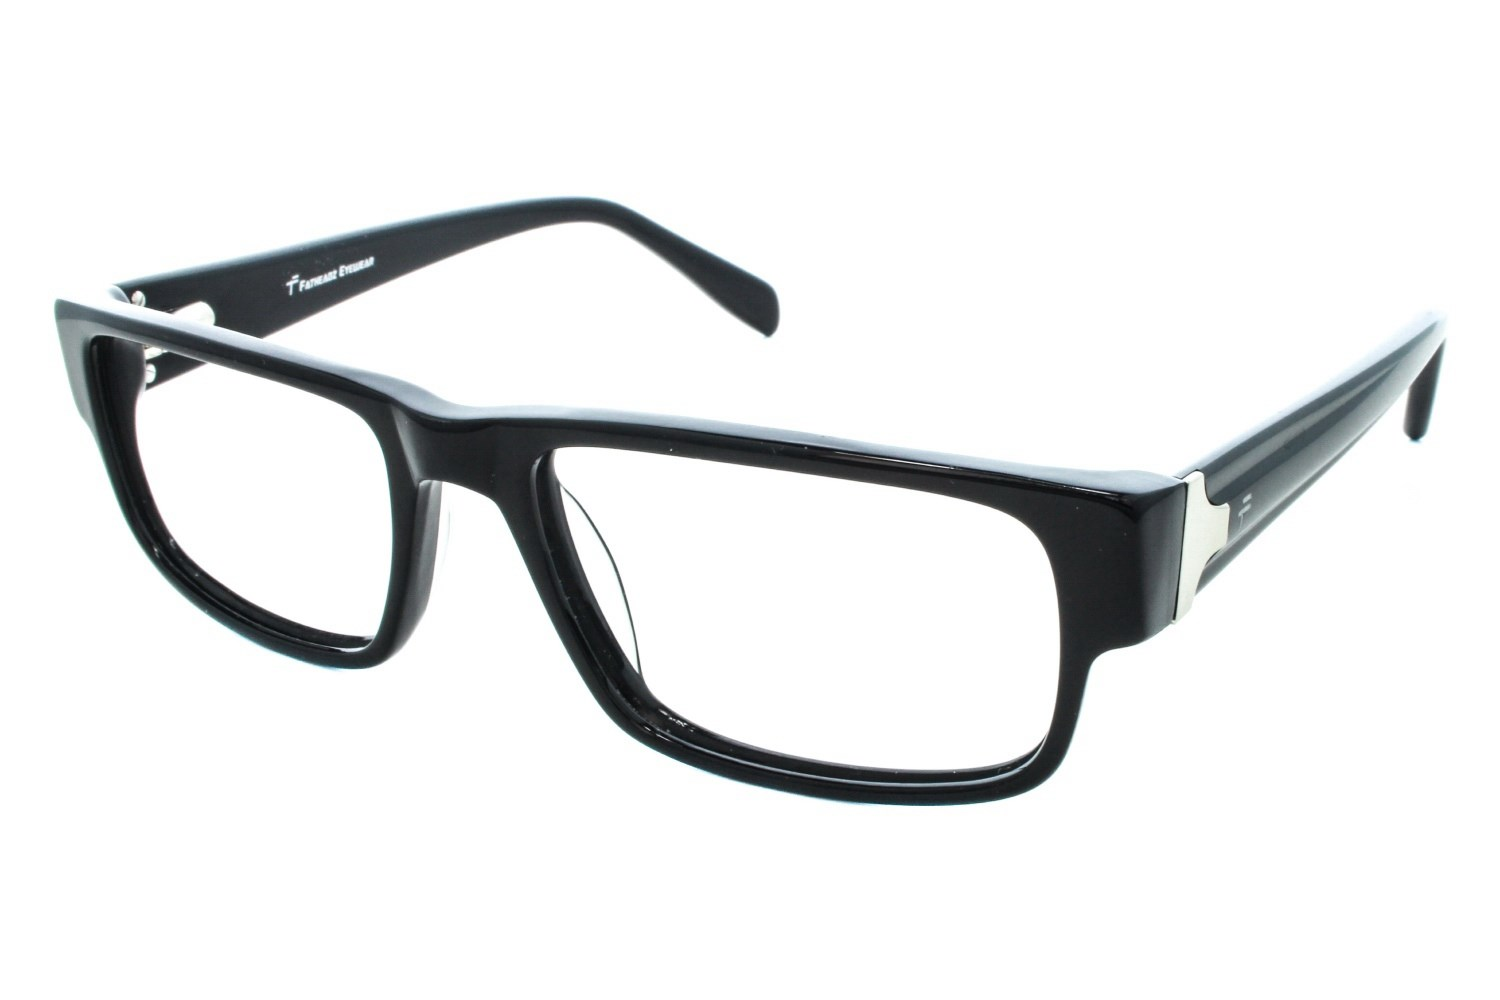 Fatheadz Asset Prescription Eyeglasses Frames